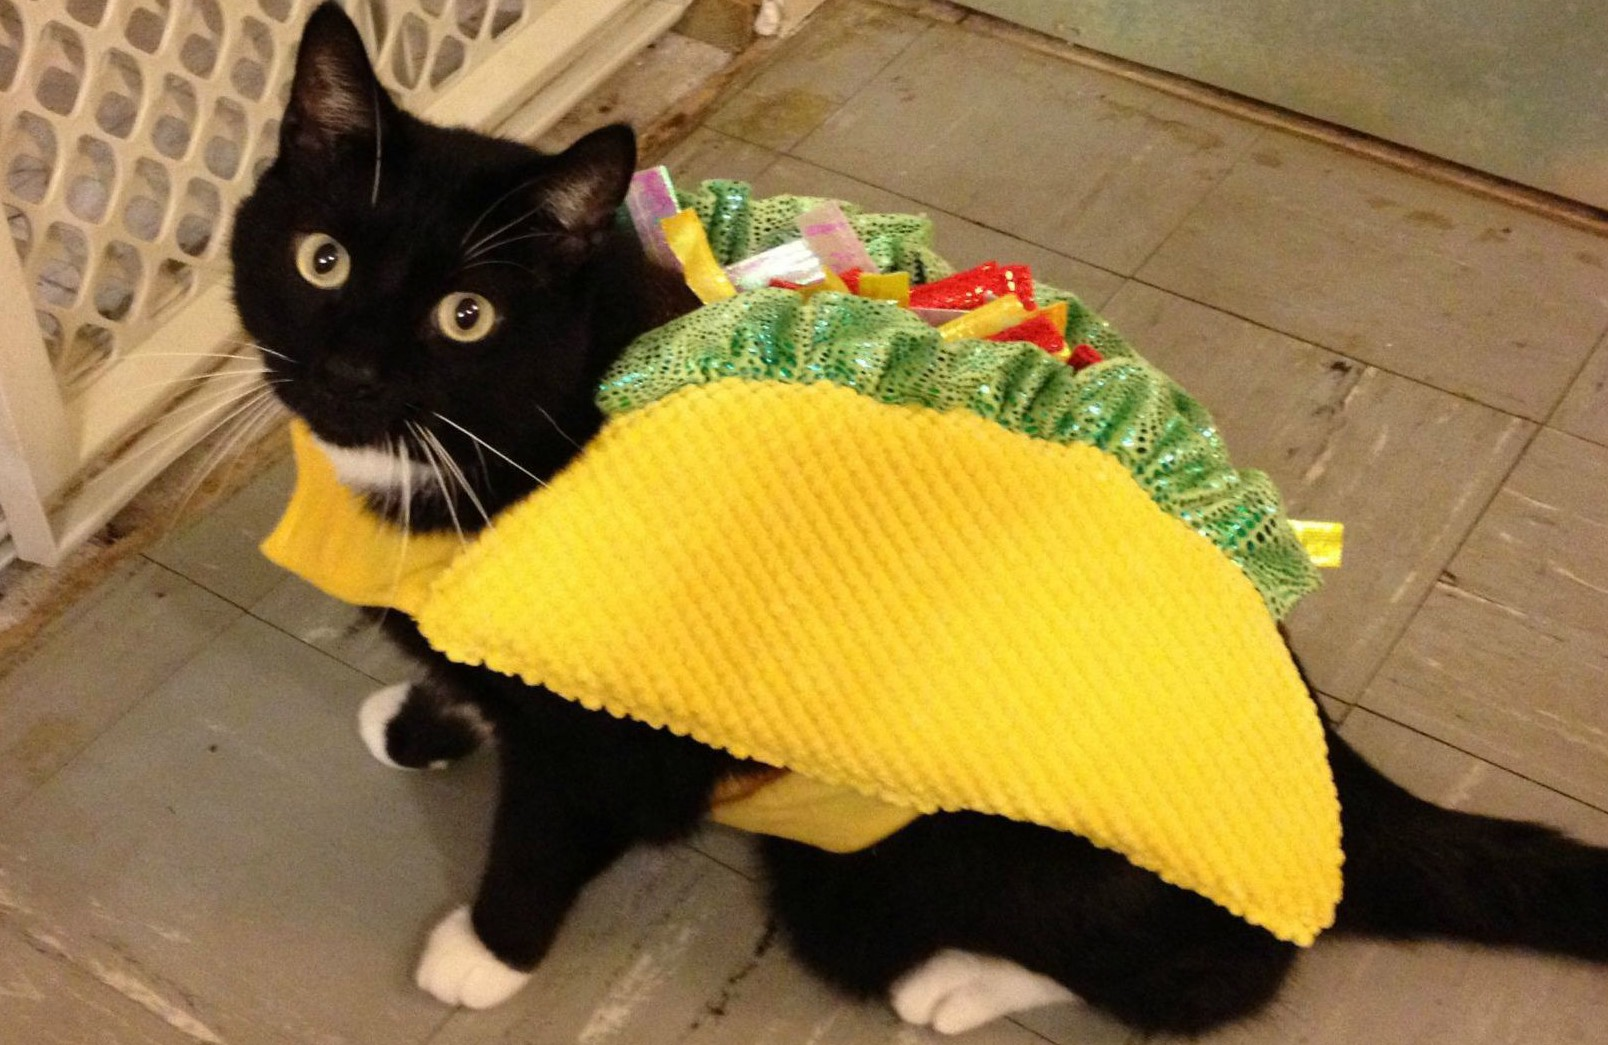 Cat Eating Mexican Food